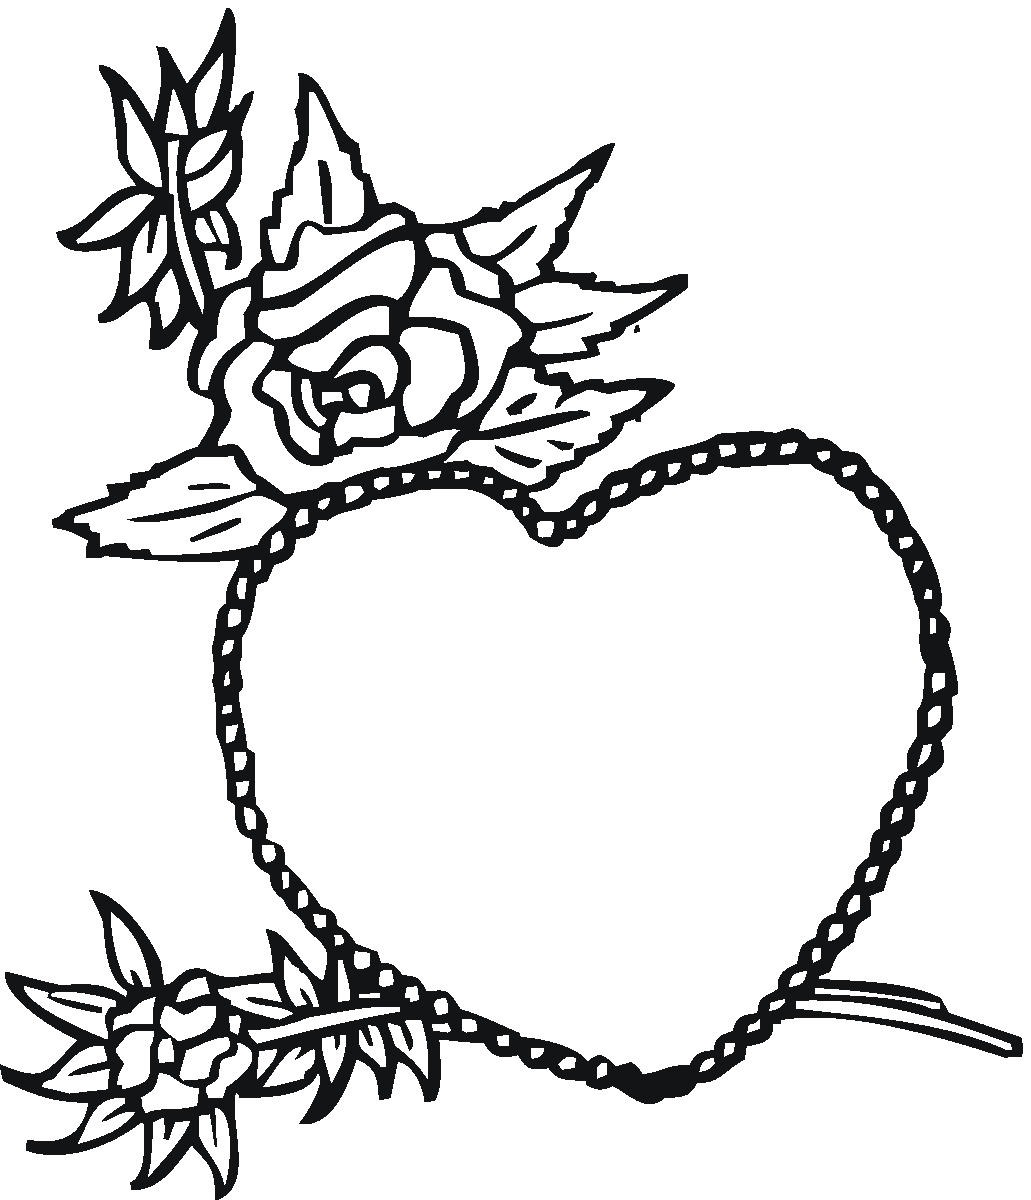 Free Printable Heart Coloring Pages For Kids A Coloring Page Of A Heart